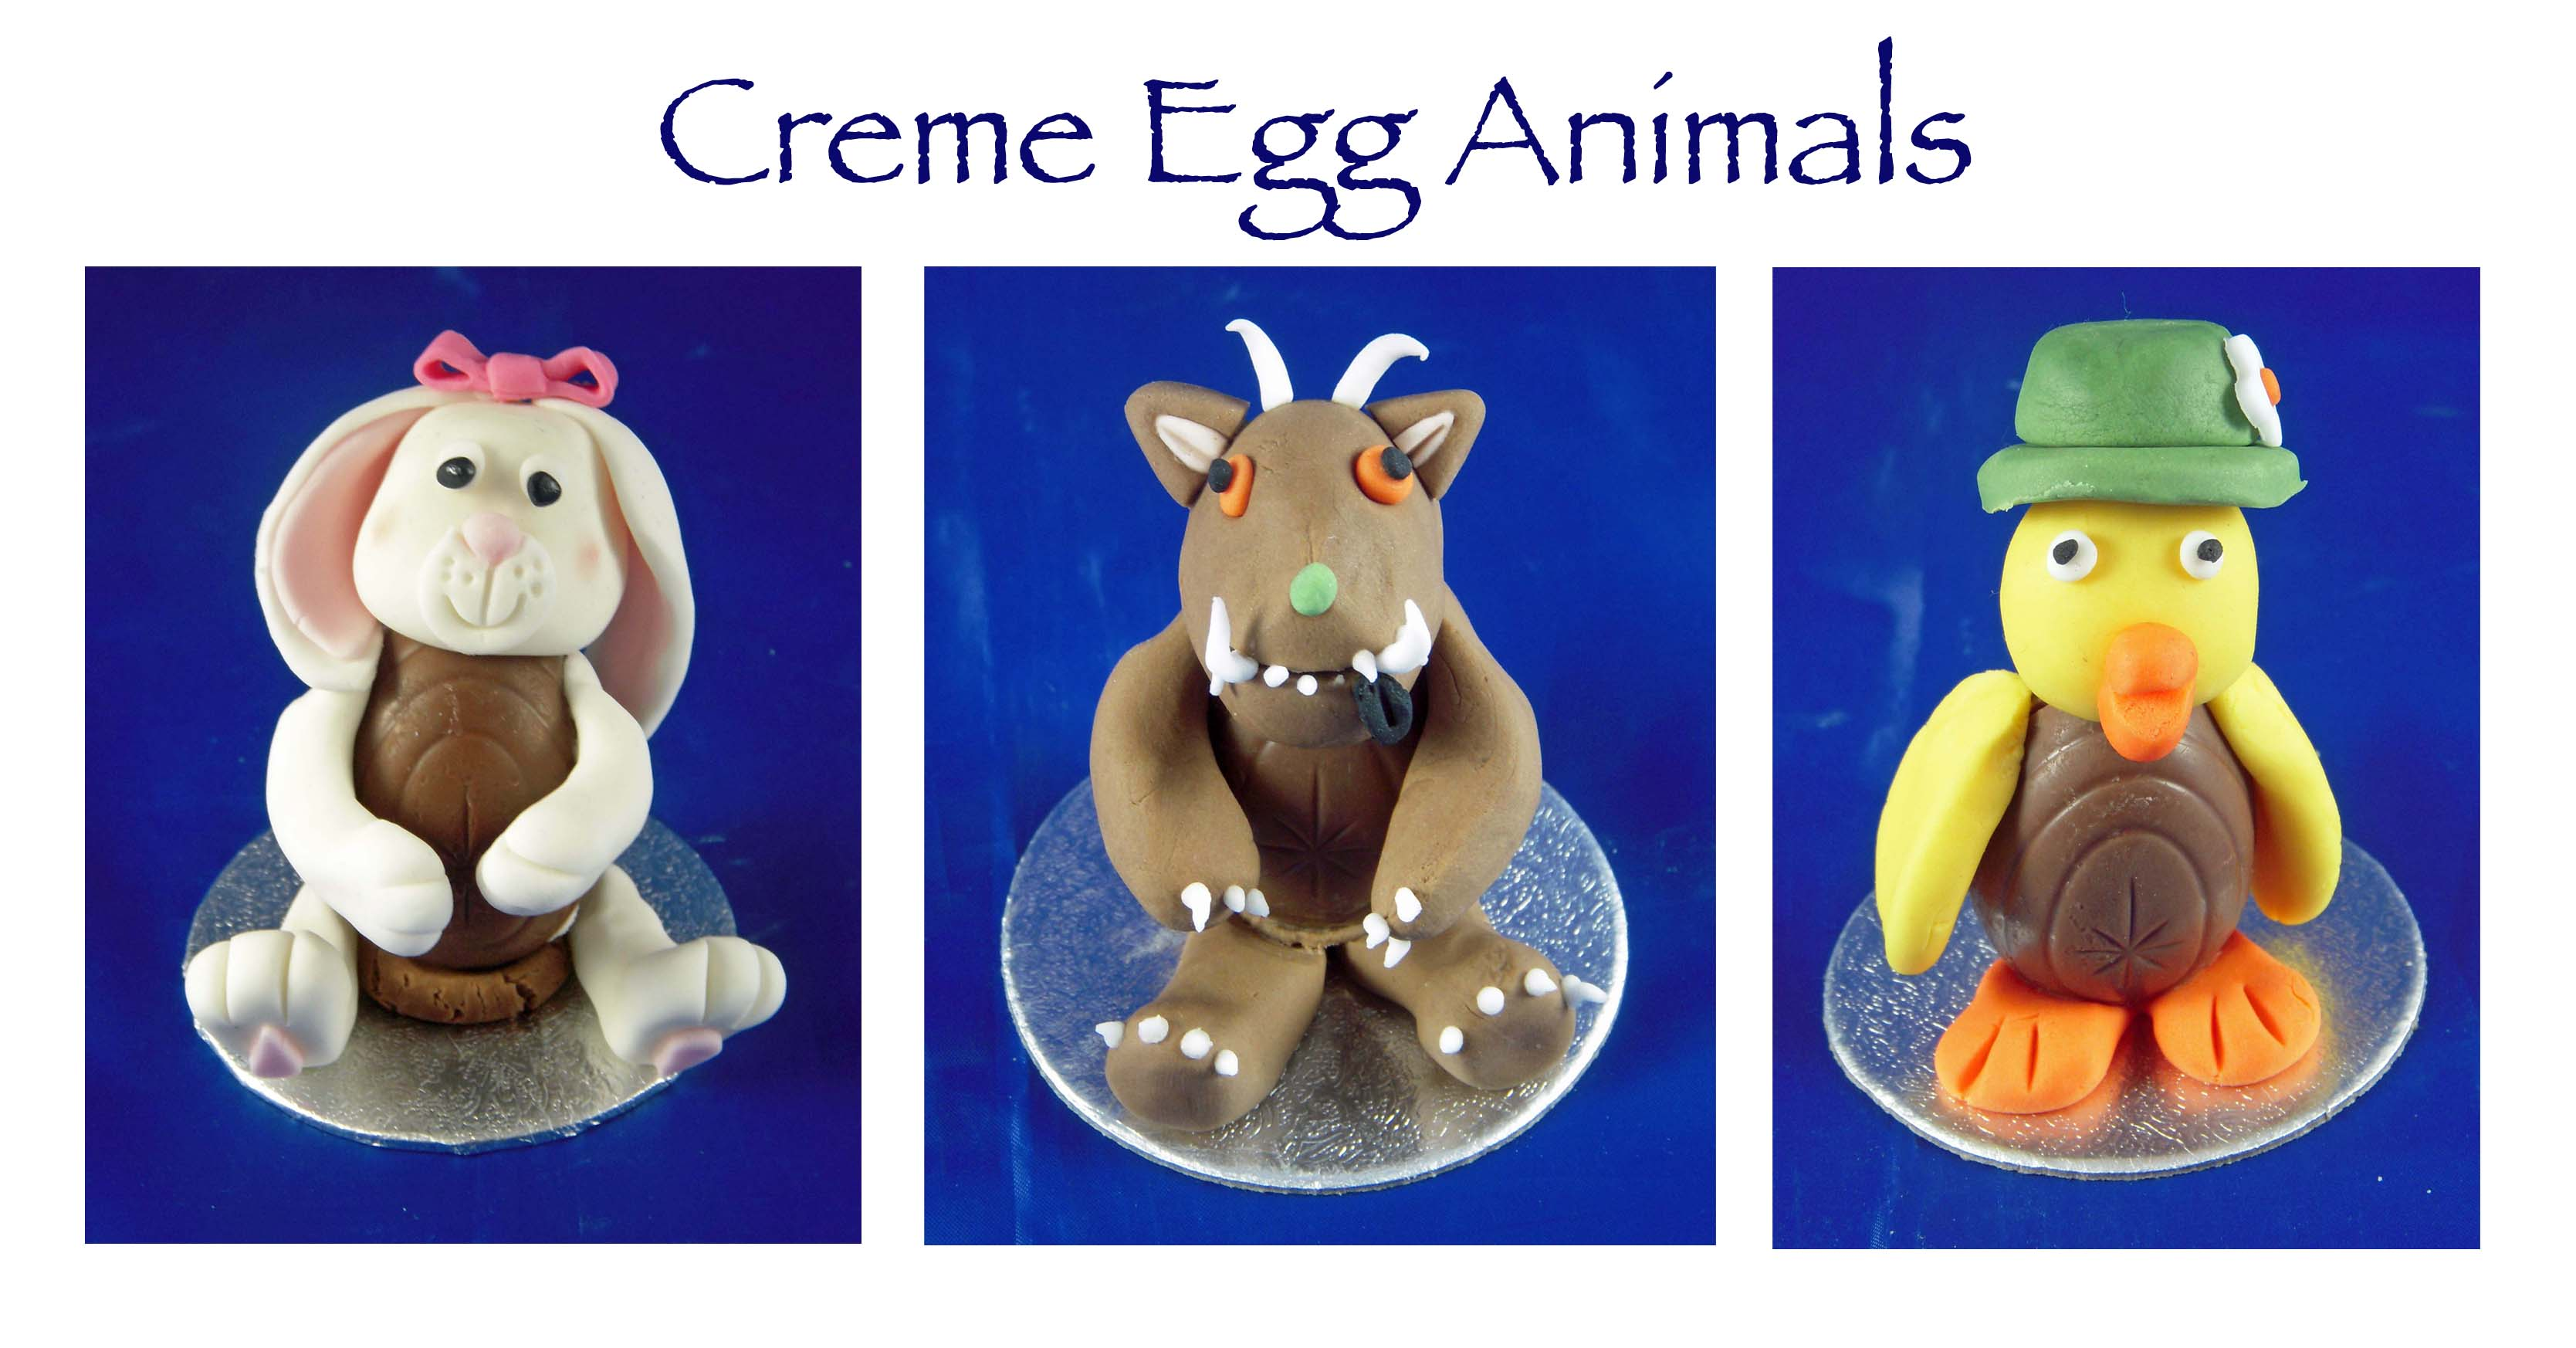 Creme Egg Animals 2